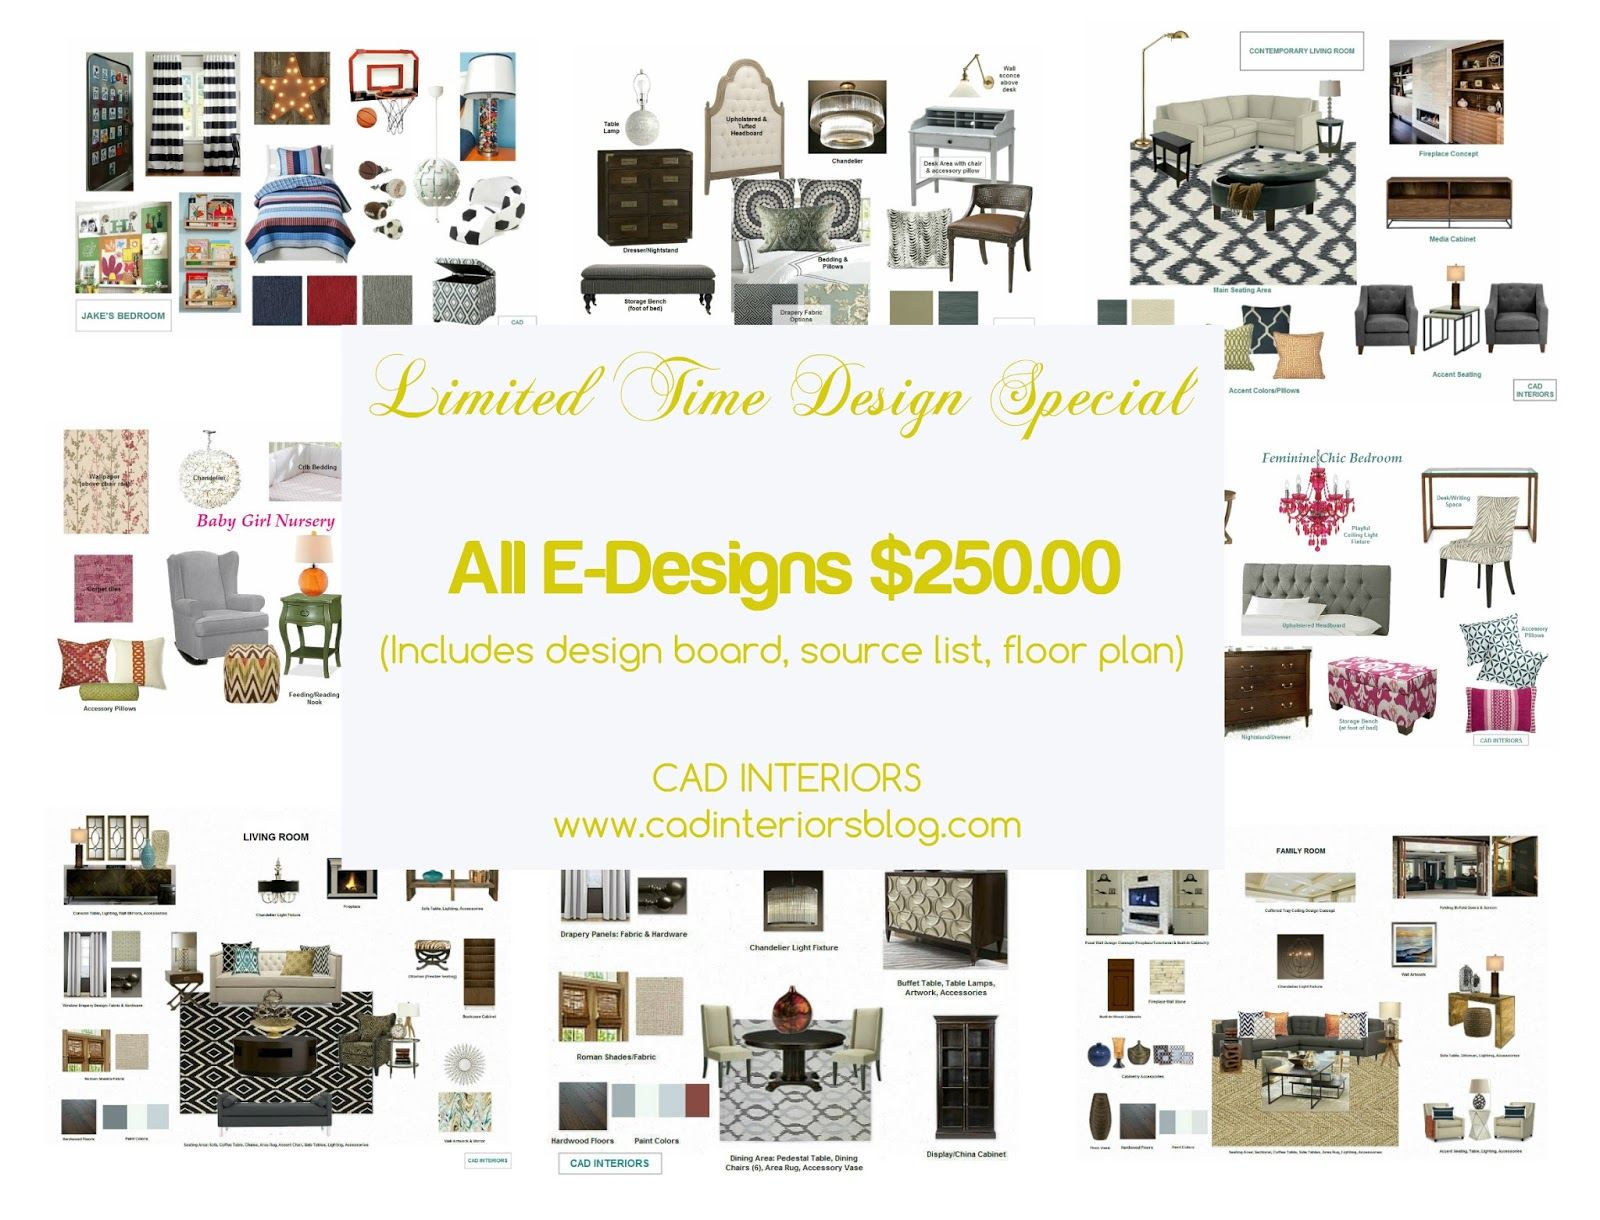 special discount pricing promotion interior design decorating services